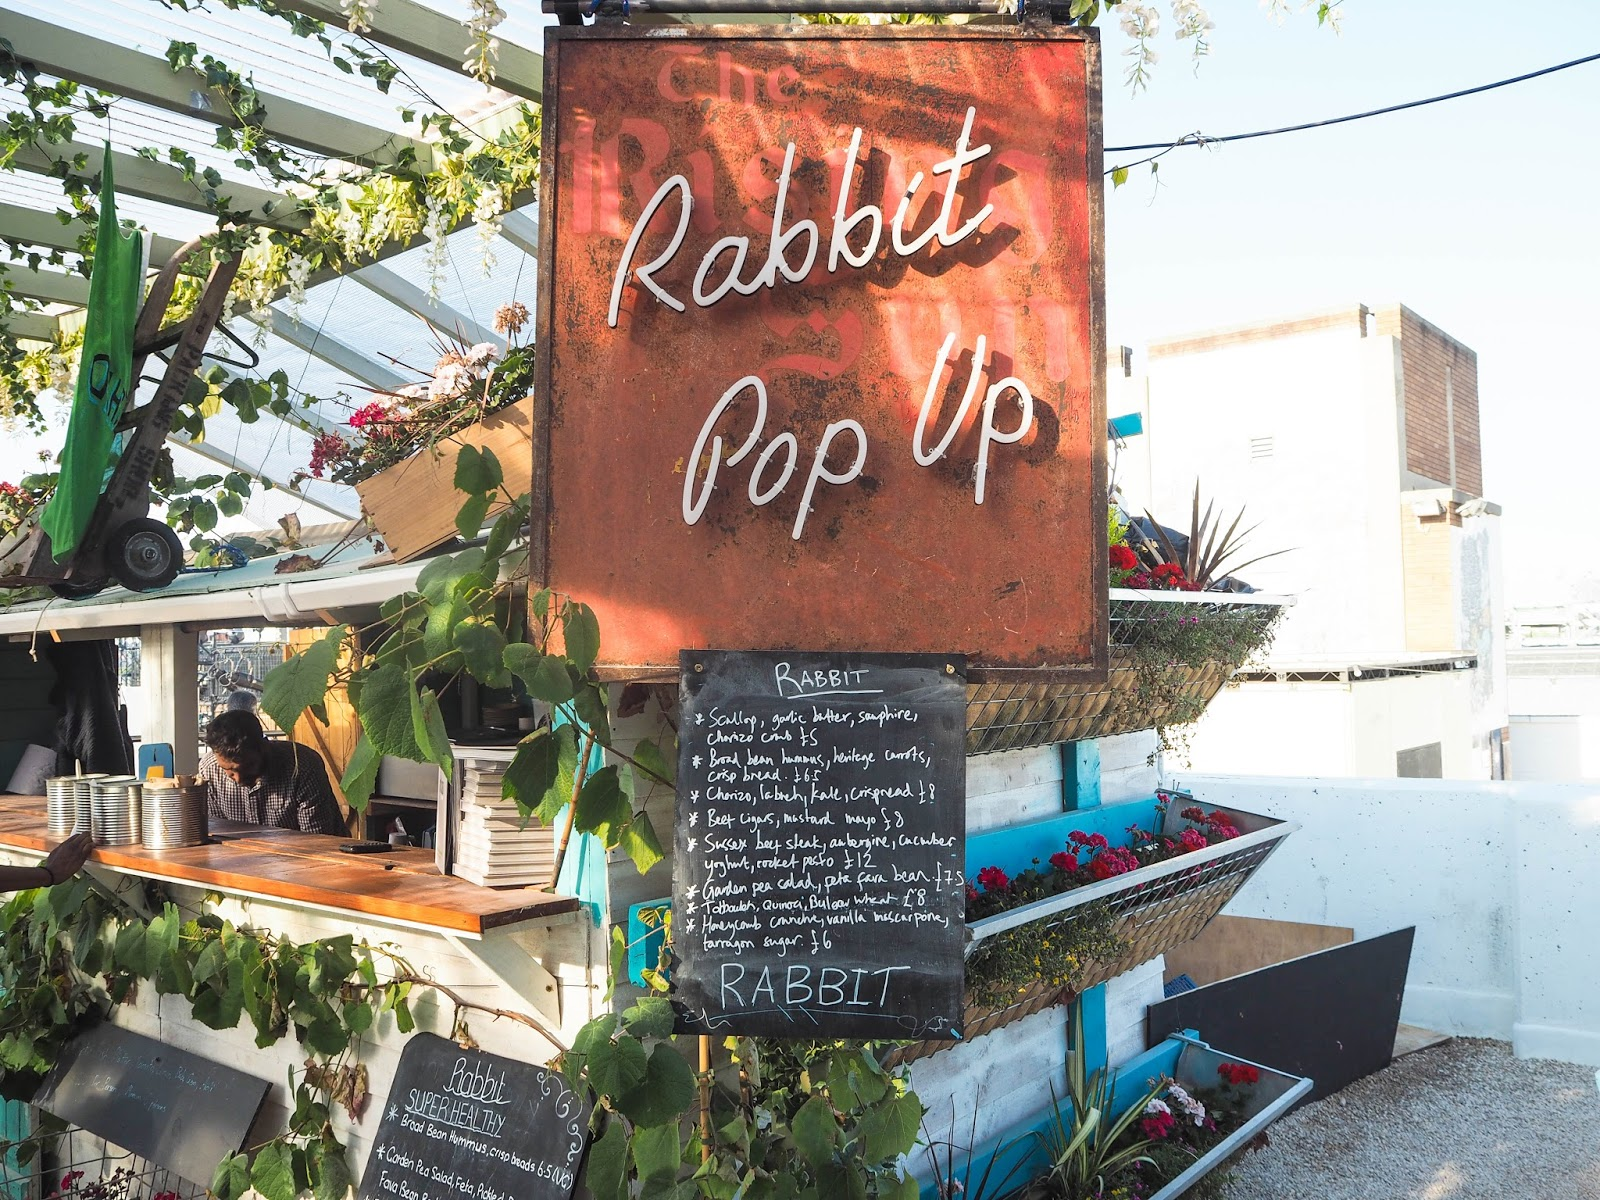 Rabbit restaurant pop-up, Pergola on the Roof